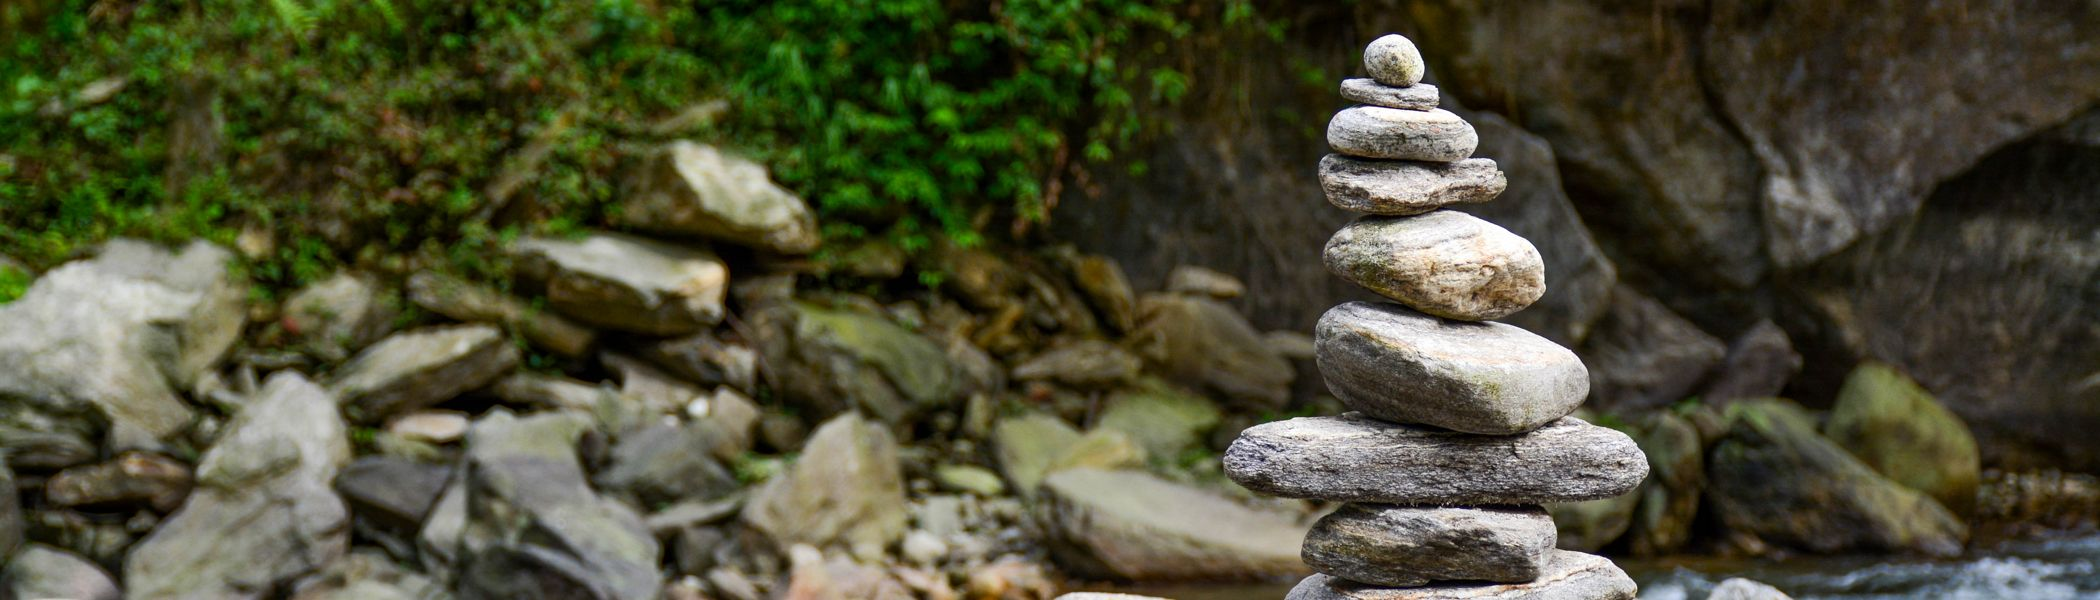 Stacked rocks over water